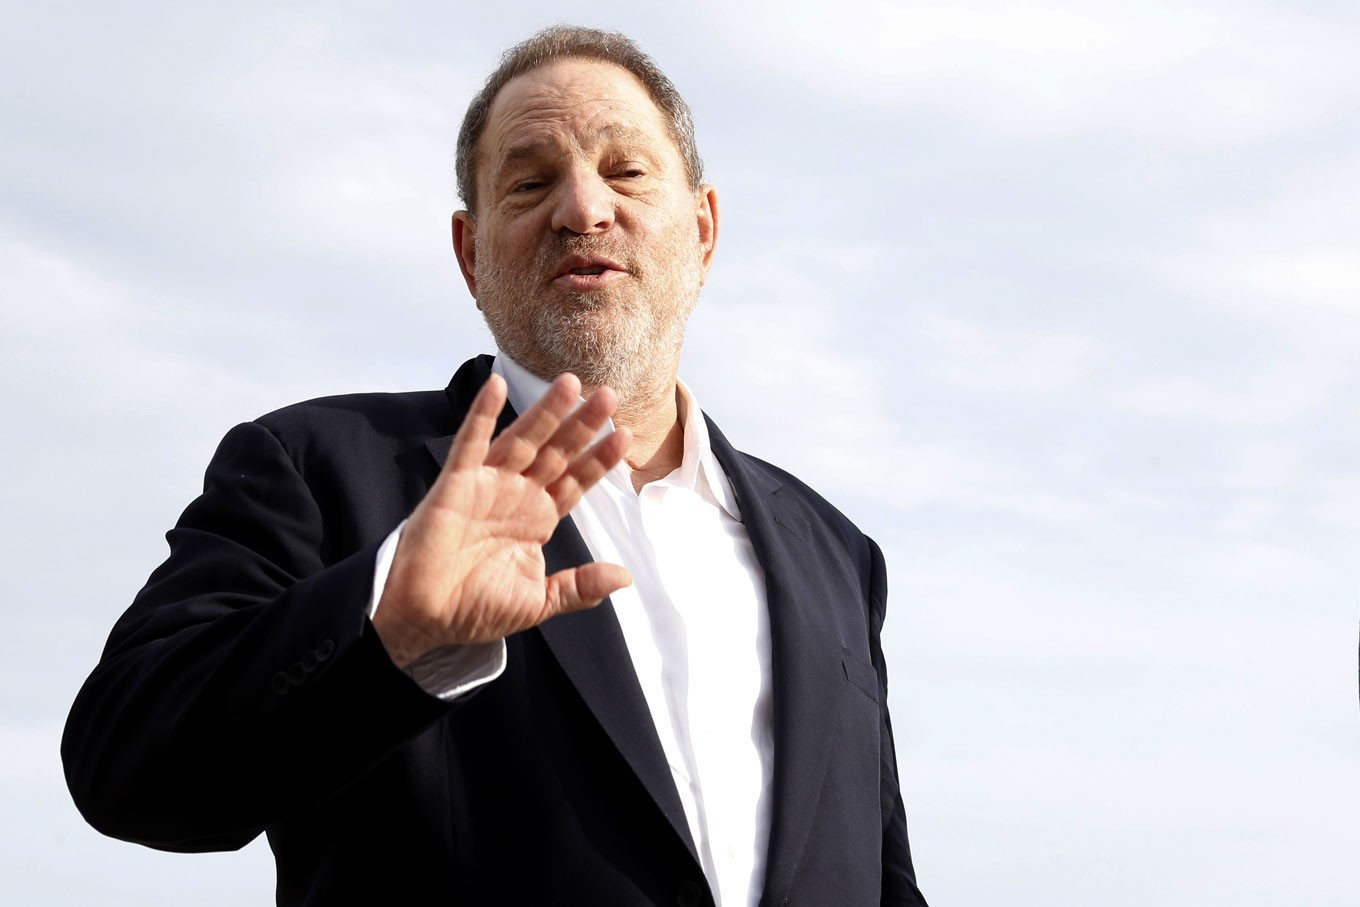 Wealthy celebrities like Weinstein better-armed to face sex charges